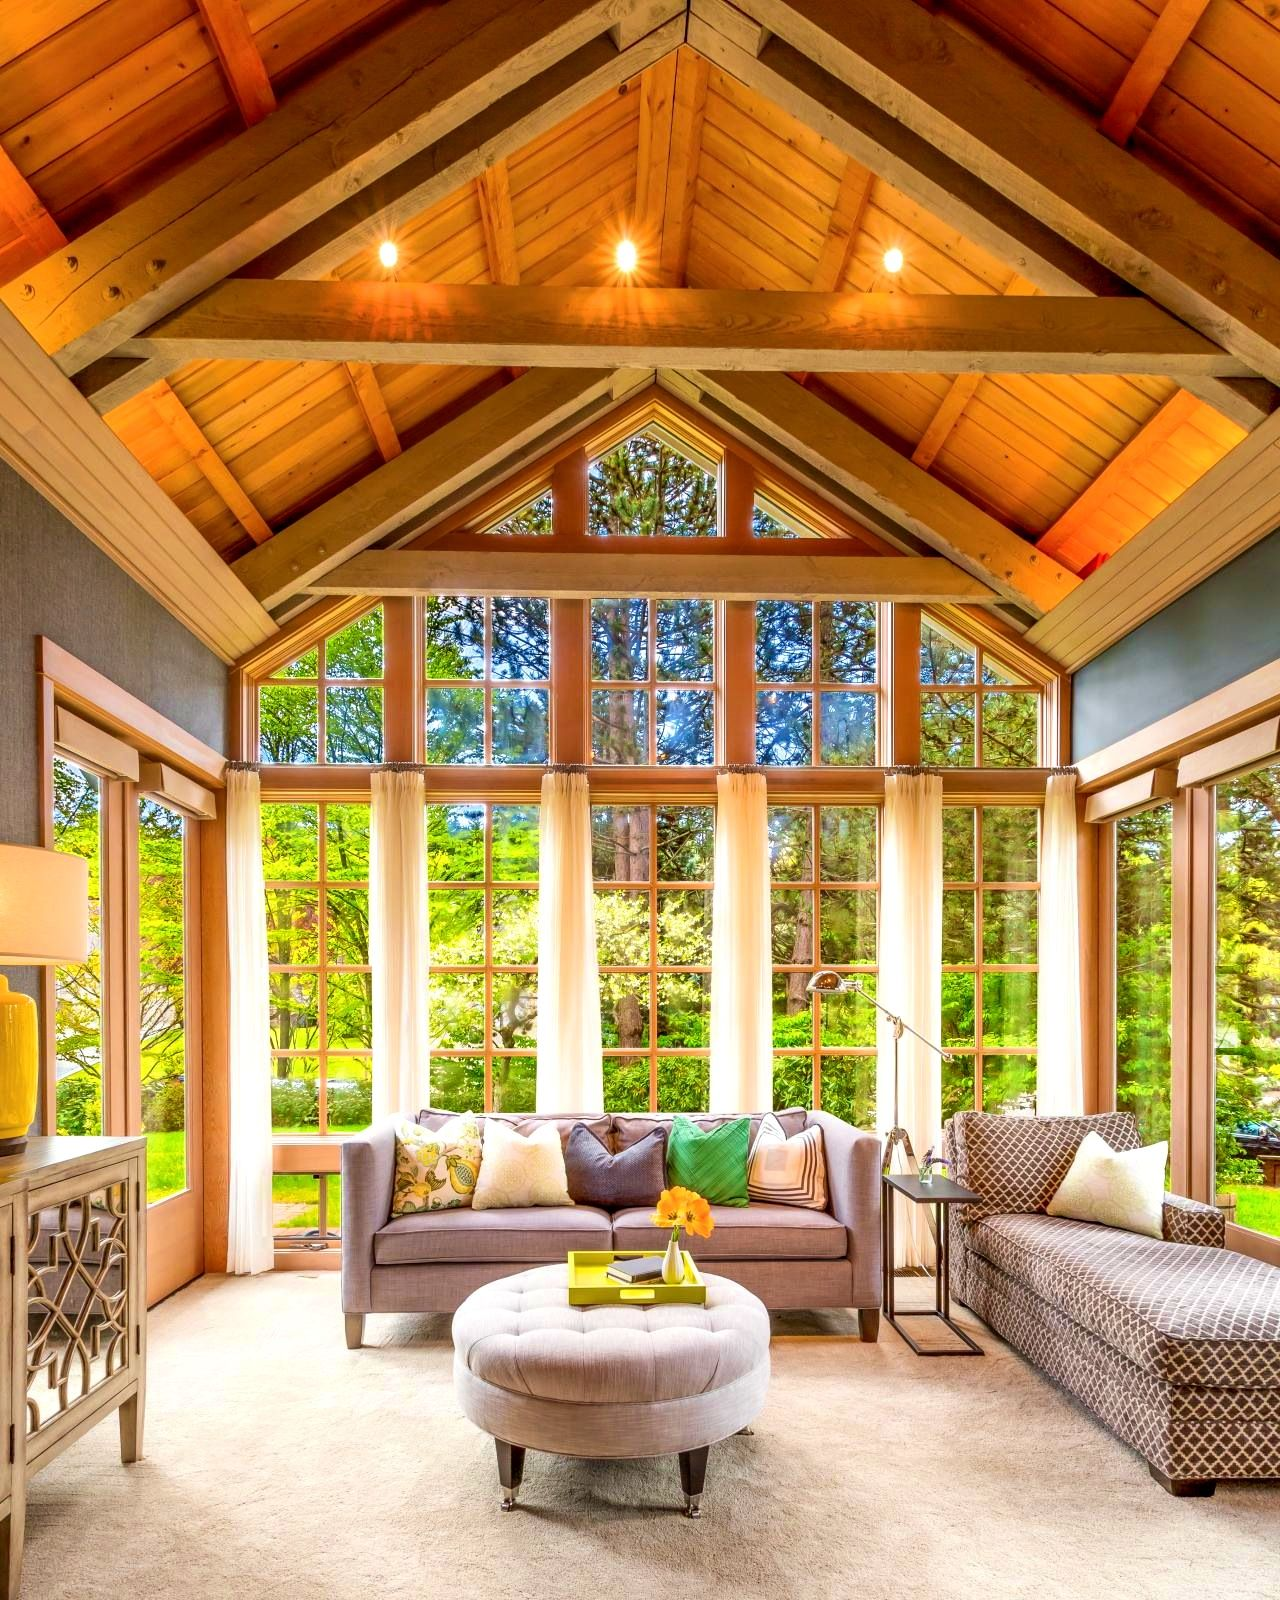 Best Of Winsome Vaulted Great Room Floor Plans Harmony Weihsfamily Friendly Living Lighting Ceiling With Fireplace Pic Great Rooms Wooden Ceiling Design House